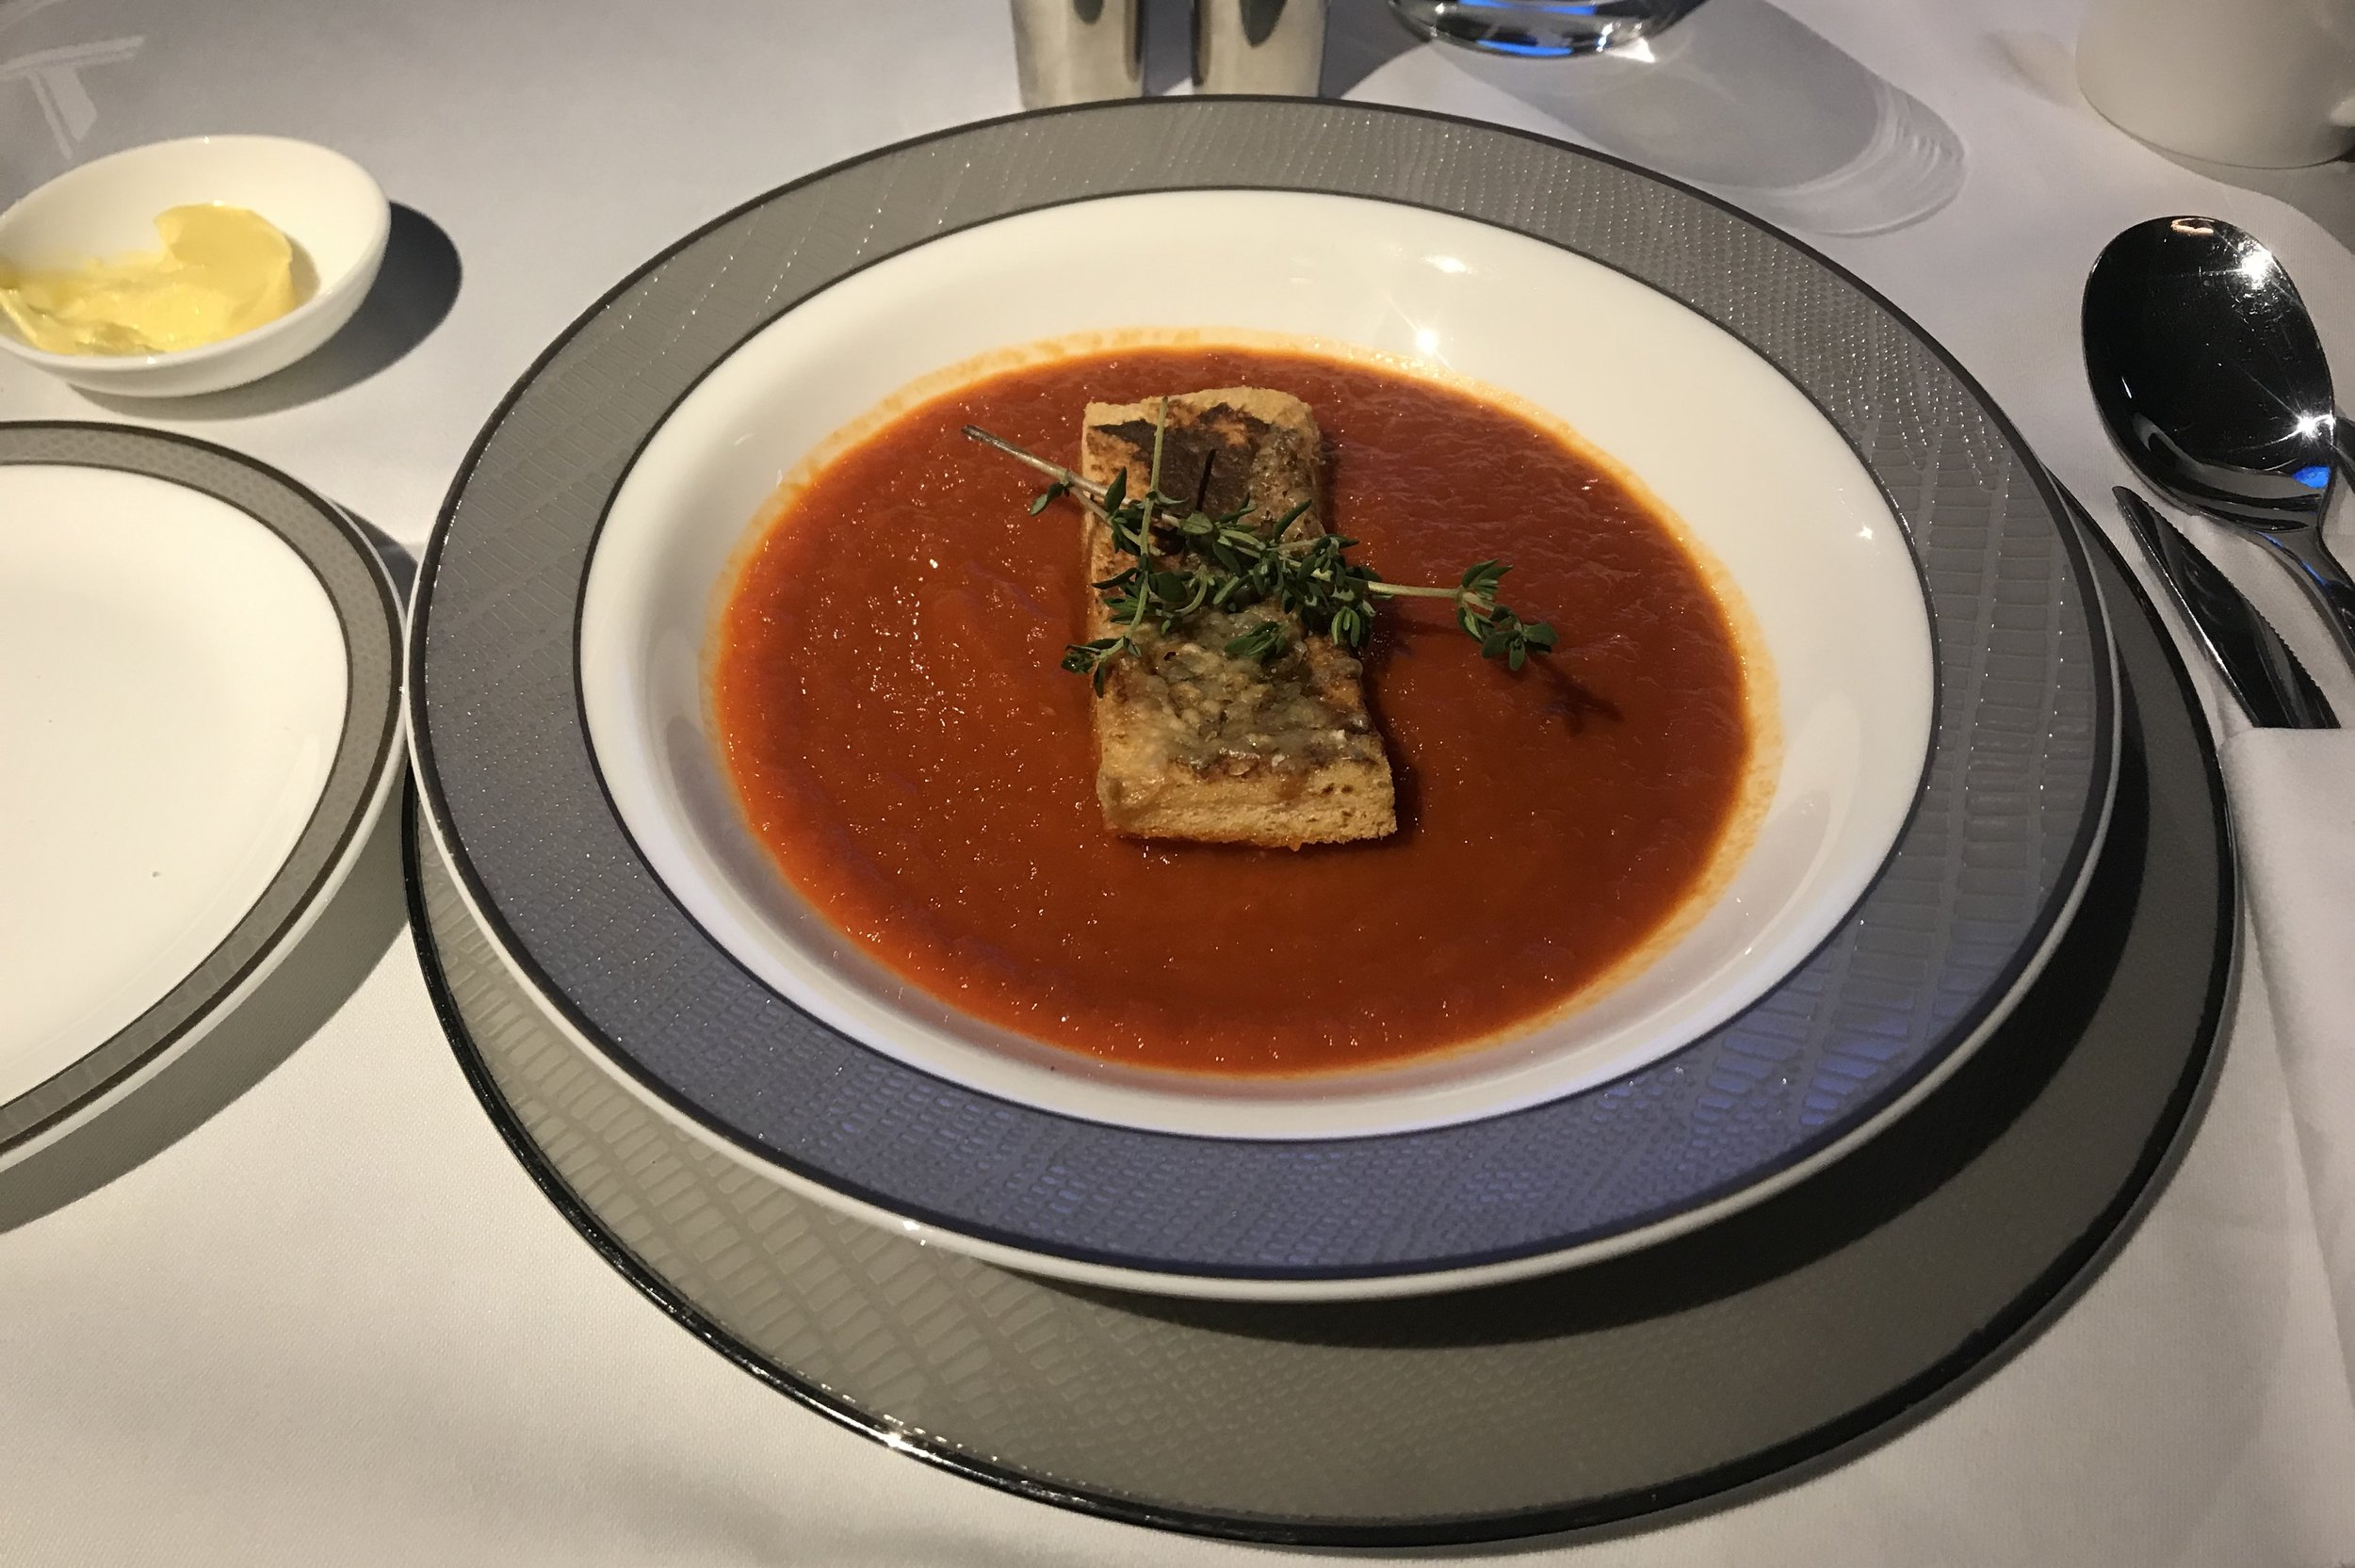 Singapore Airlines Suites Class – Roasted tomato soup